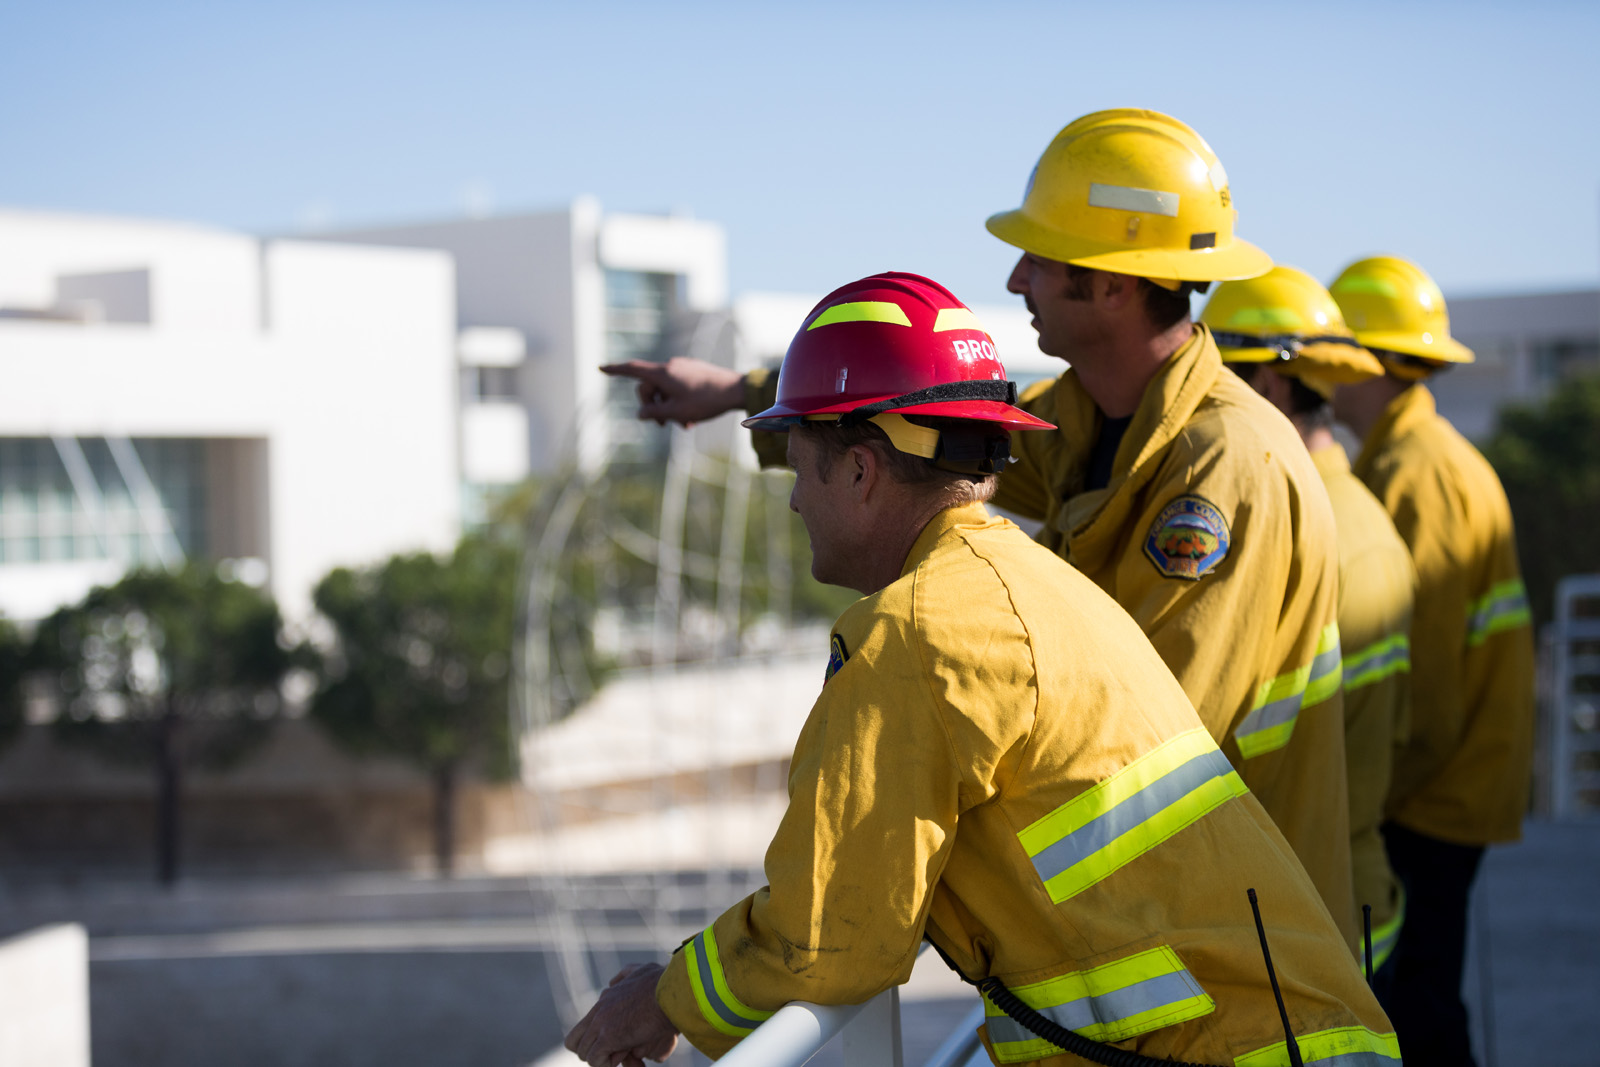 A fire broke out in western Los Angeles near the Getty Center overnight into Monday. The Getty Center was safe from the flames, thanks to efforts of first responders.